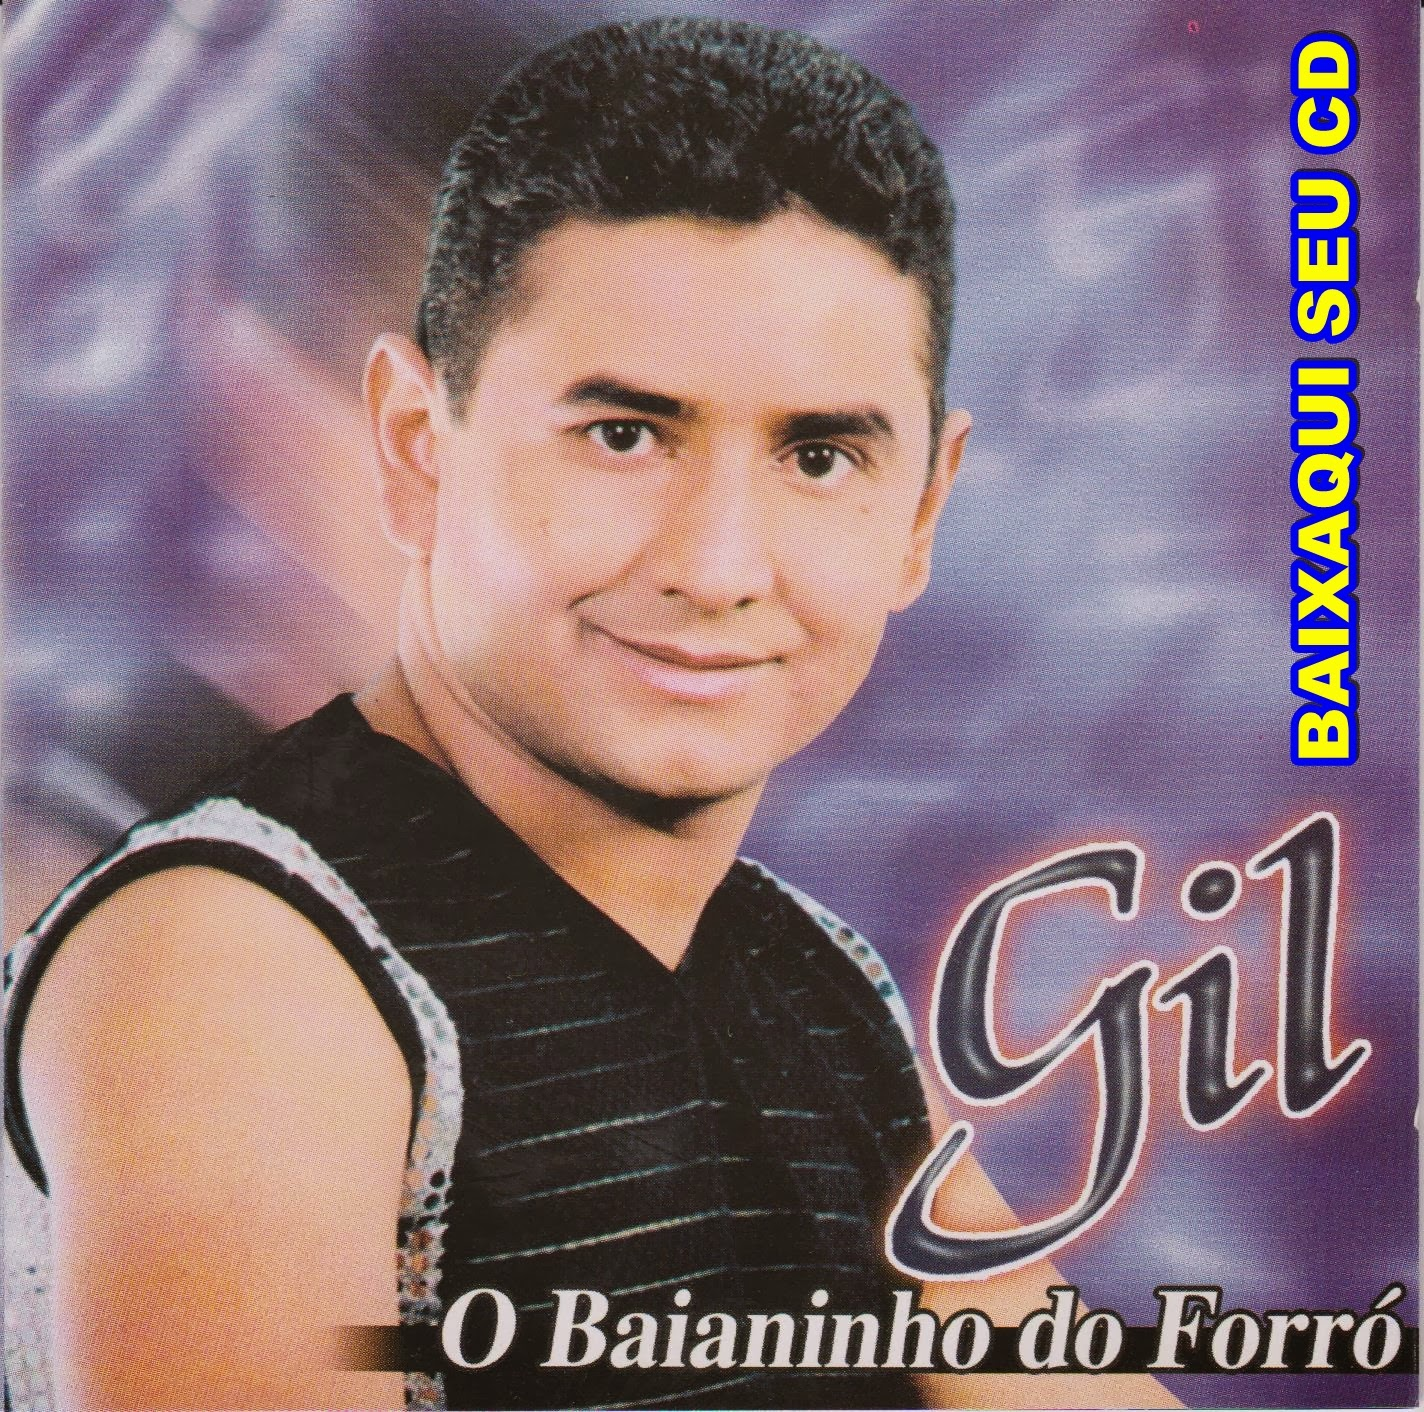 cd baianinho do forro